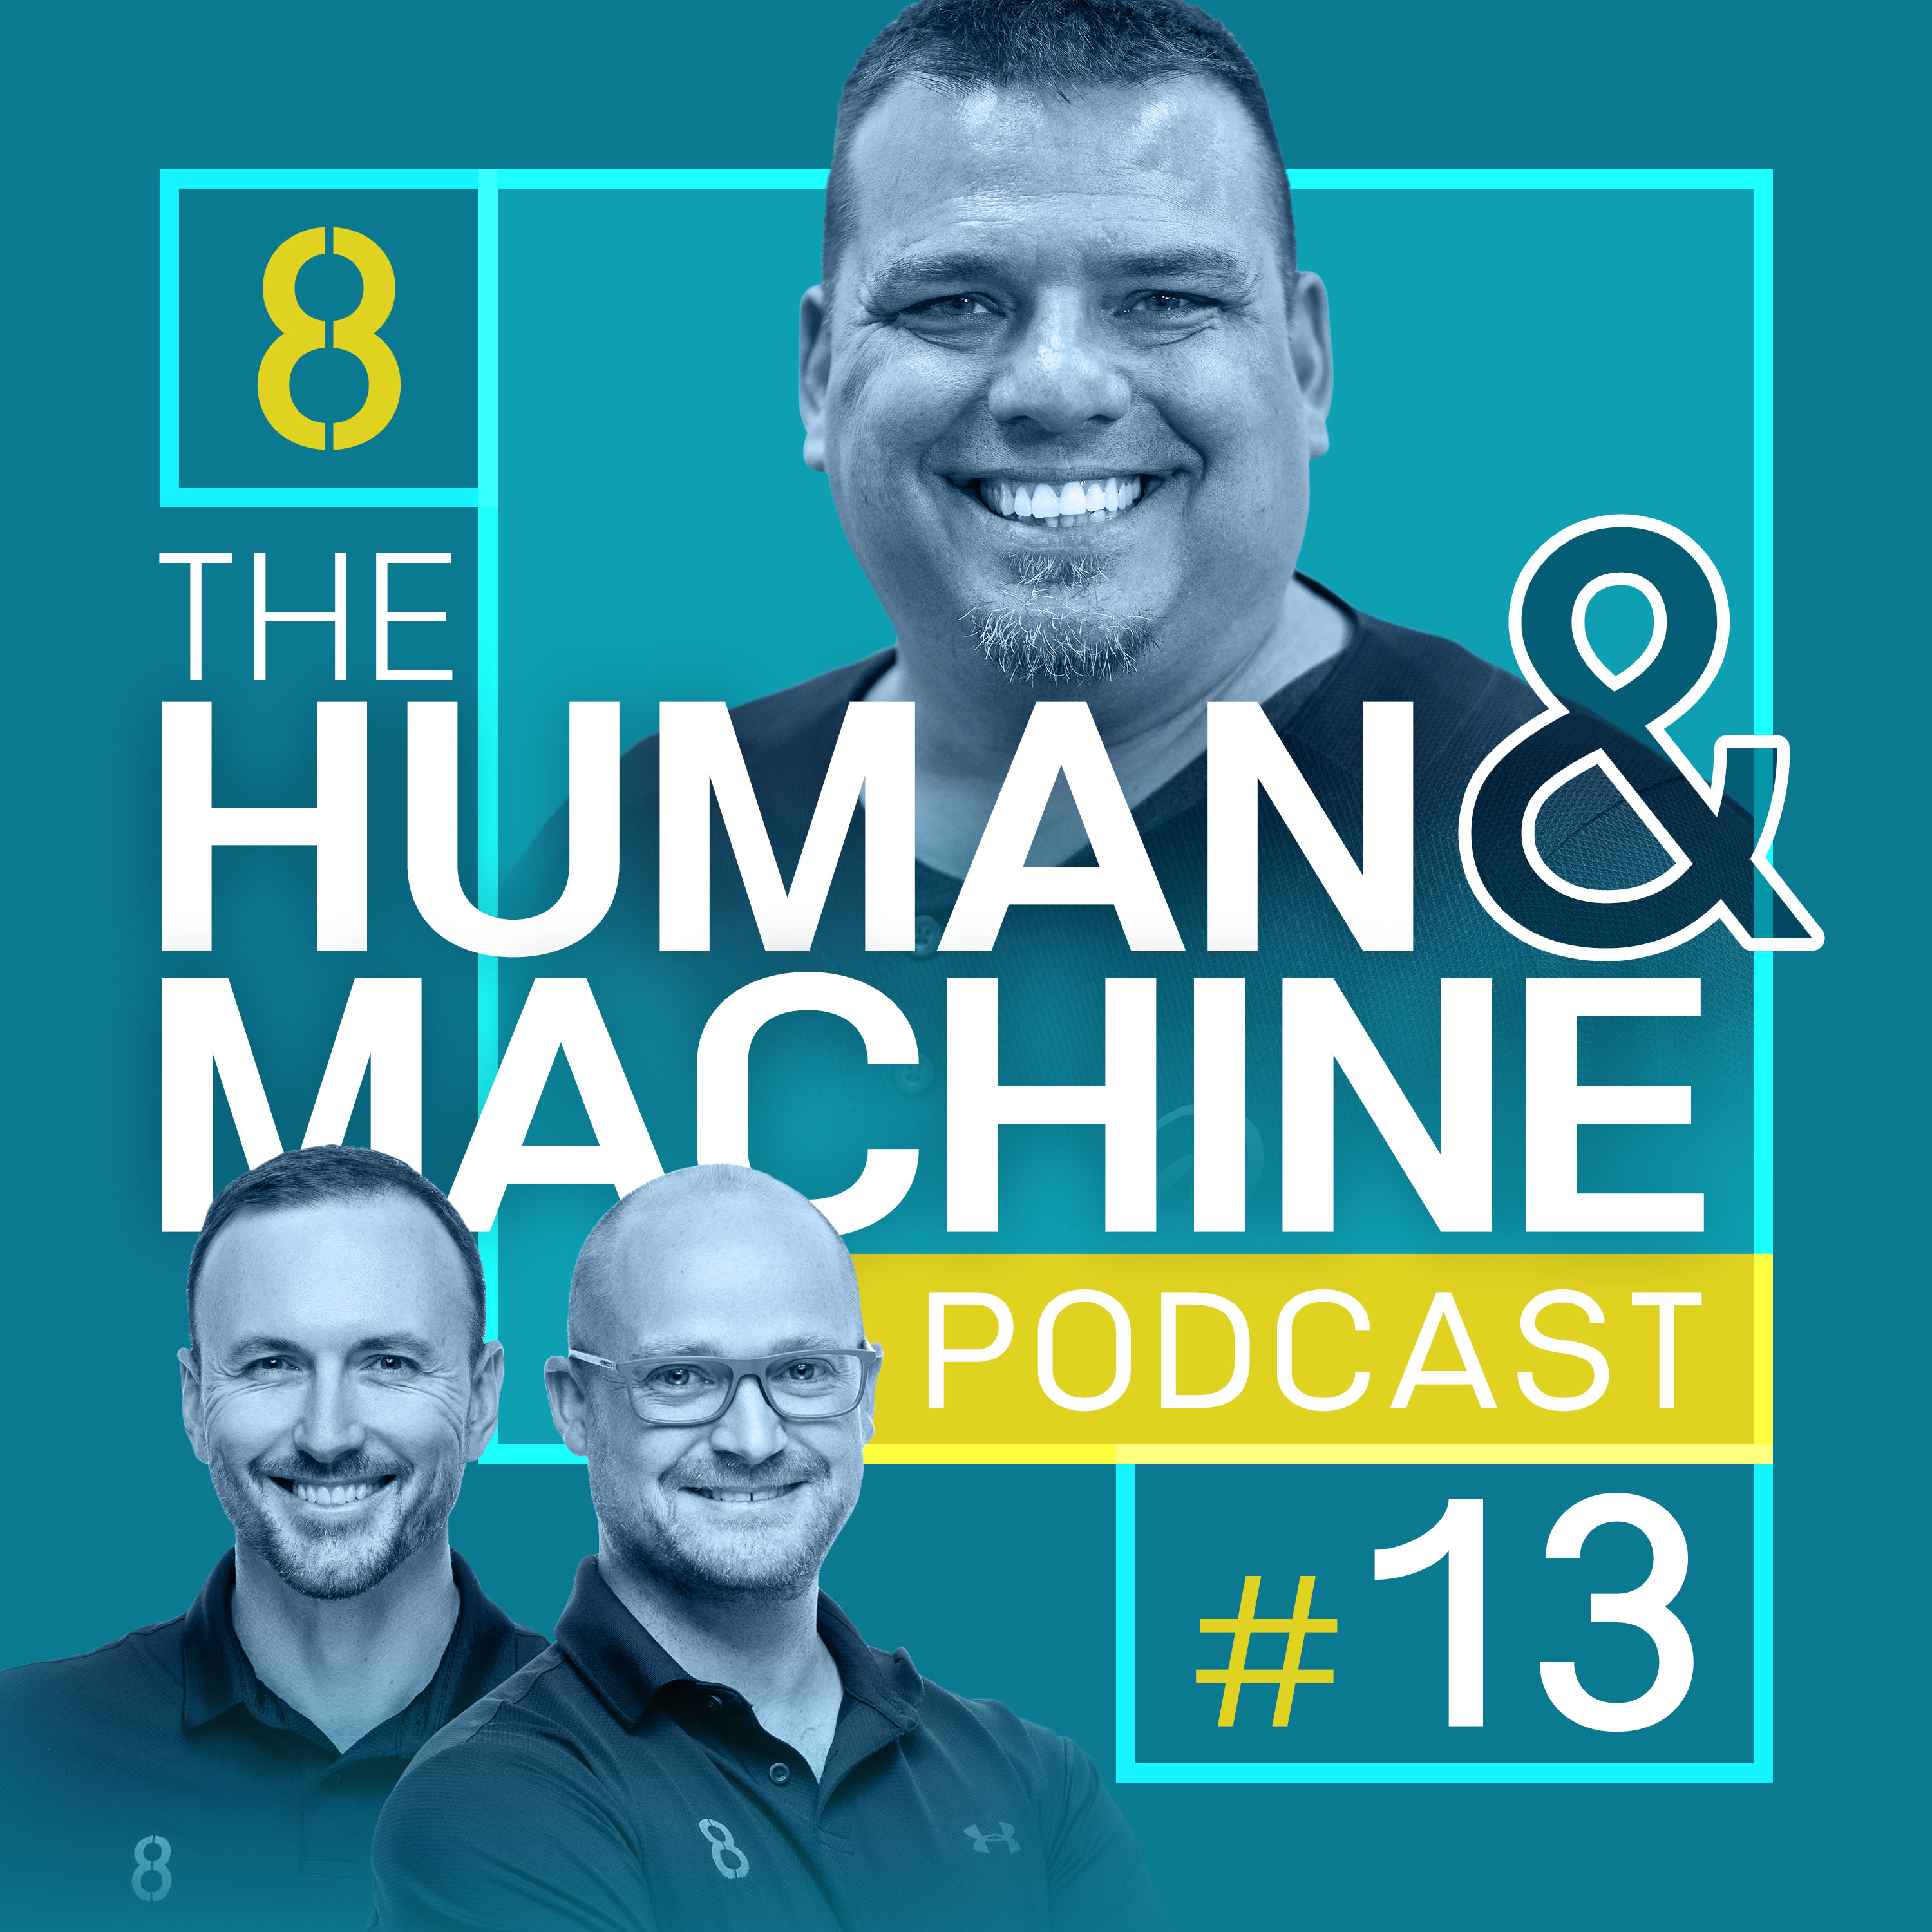 Ep 13 l Online Educator and Industry 4.0 enthusiast with Walker Reynolds